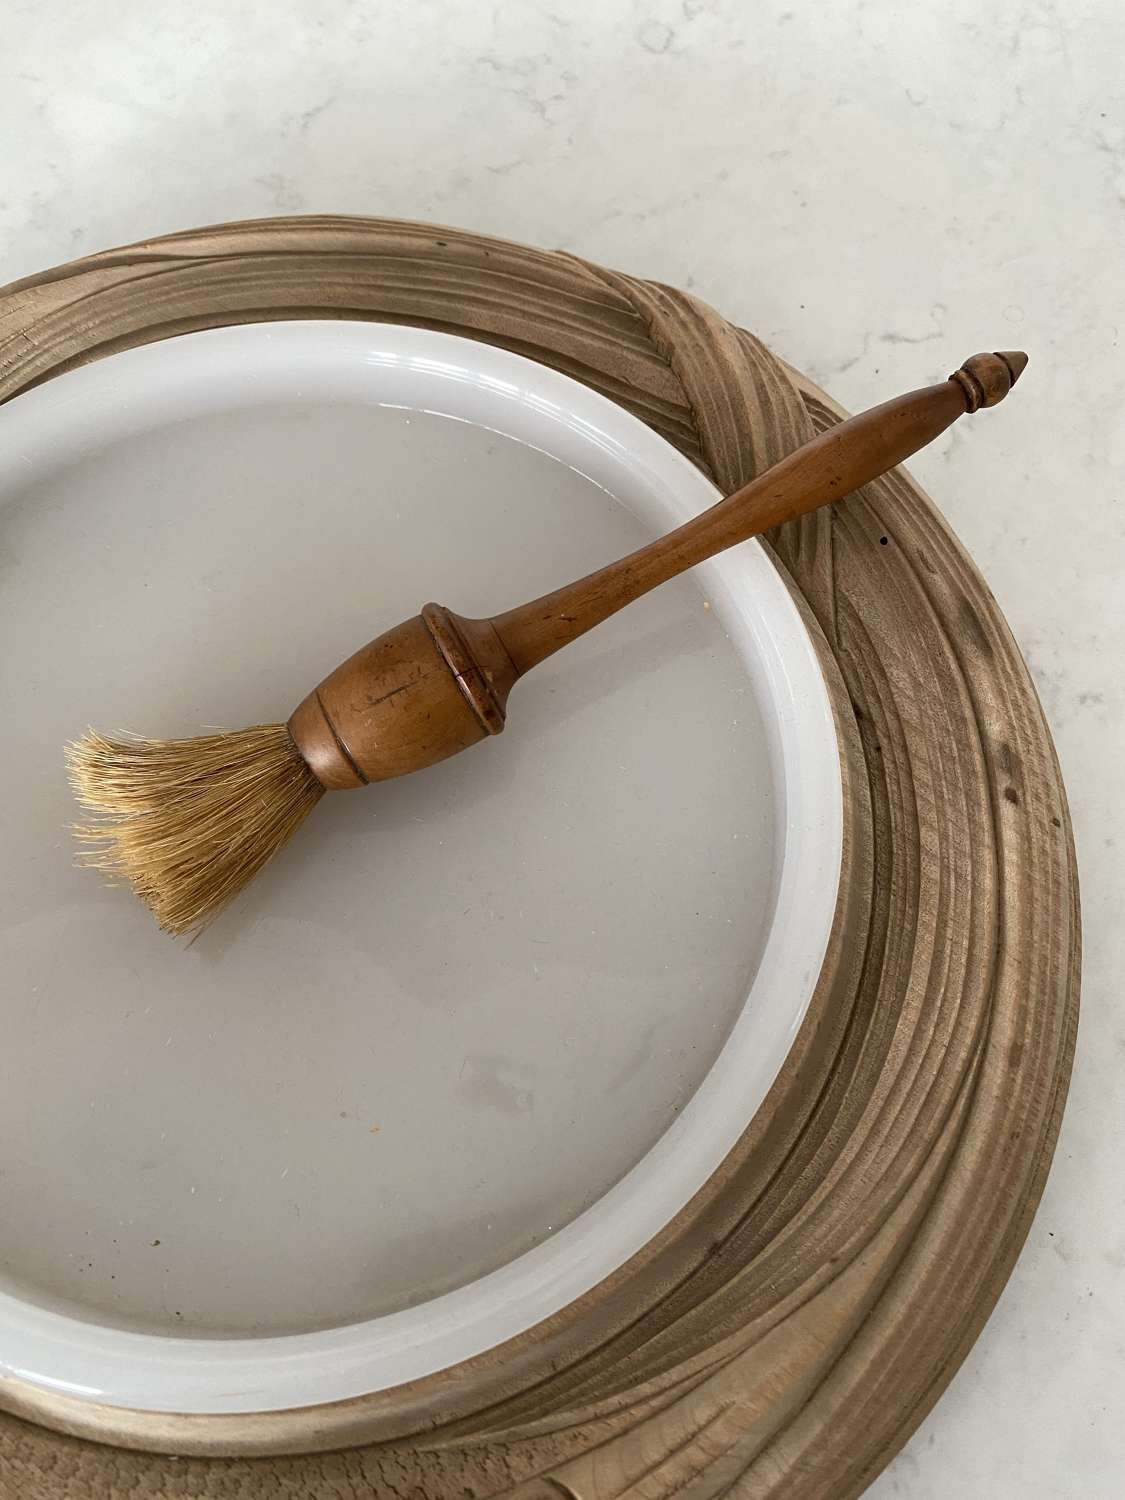 Early 20th Century Treen Sycamore Pastry Brush with Horse Hair